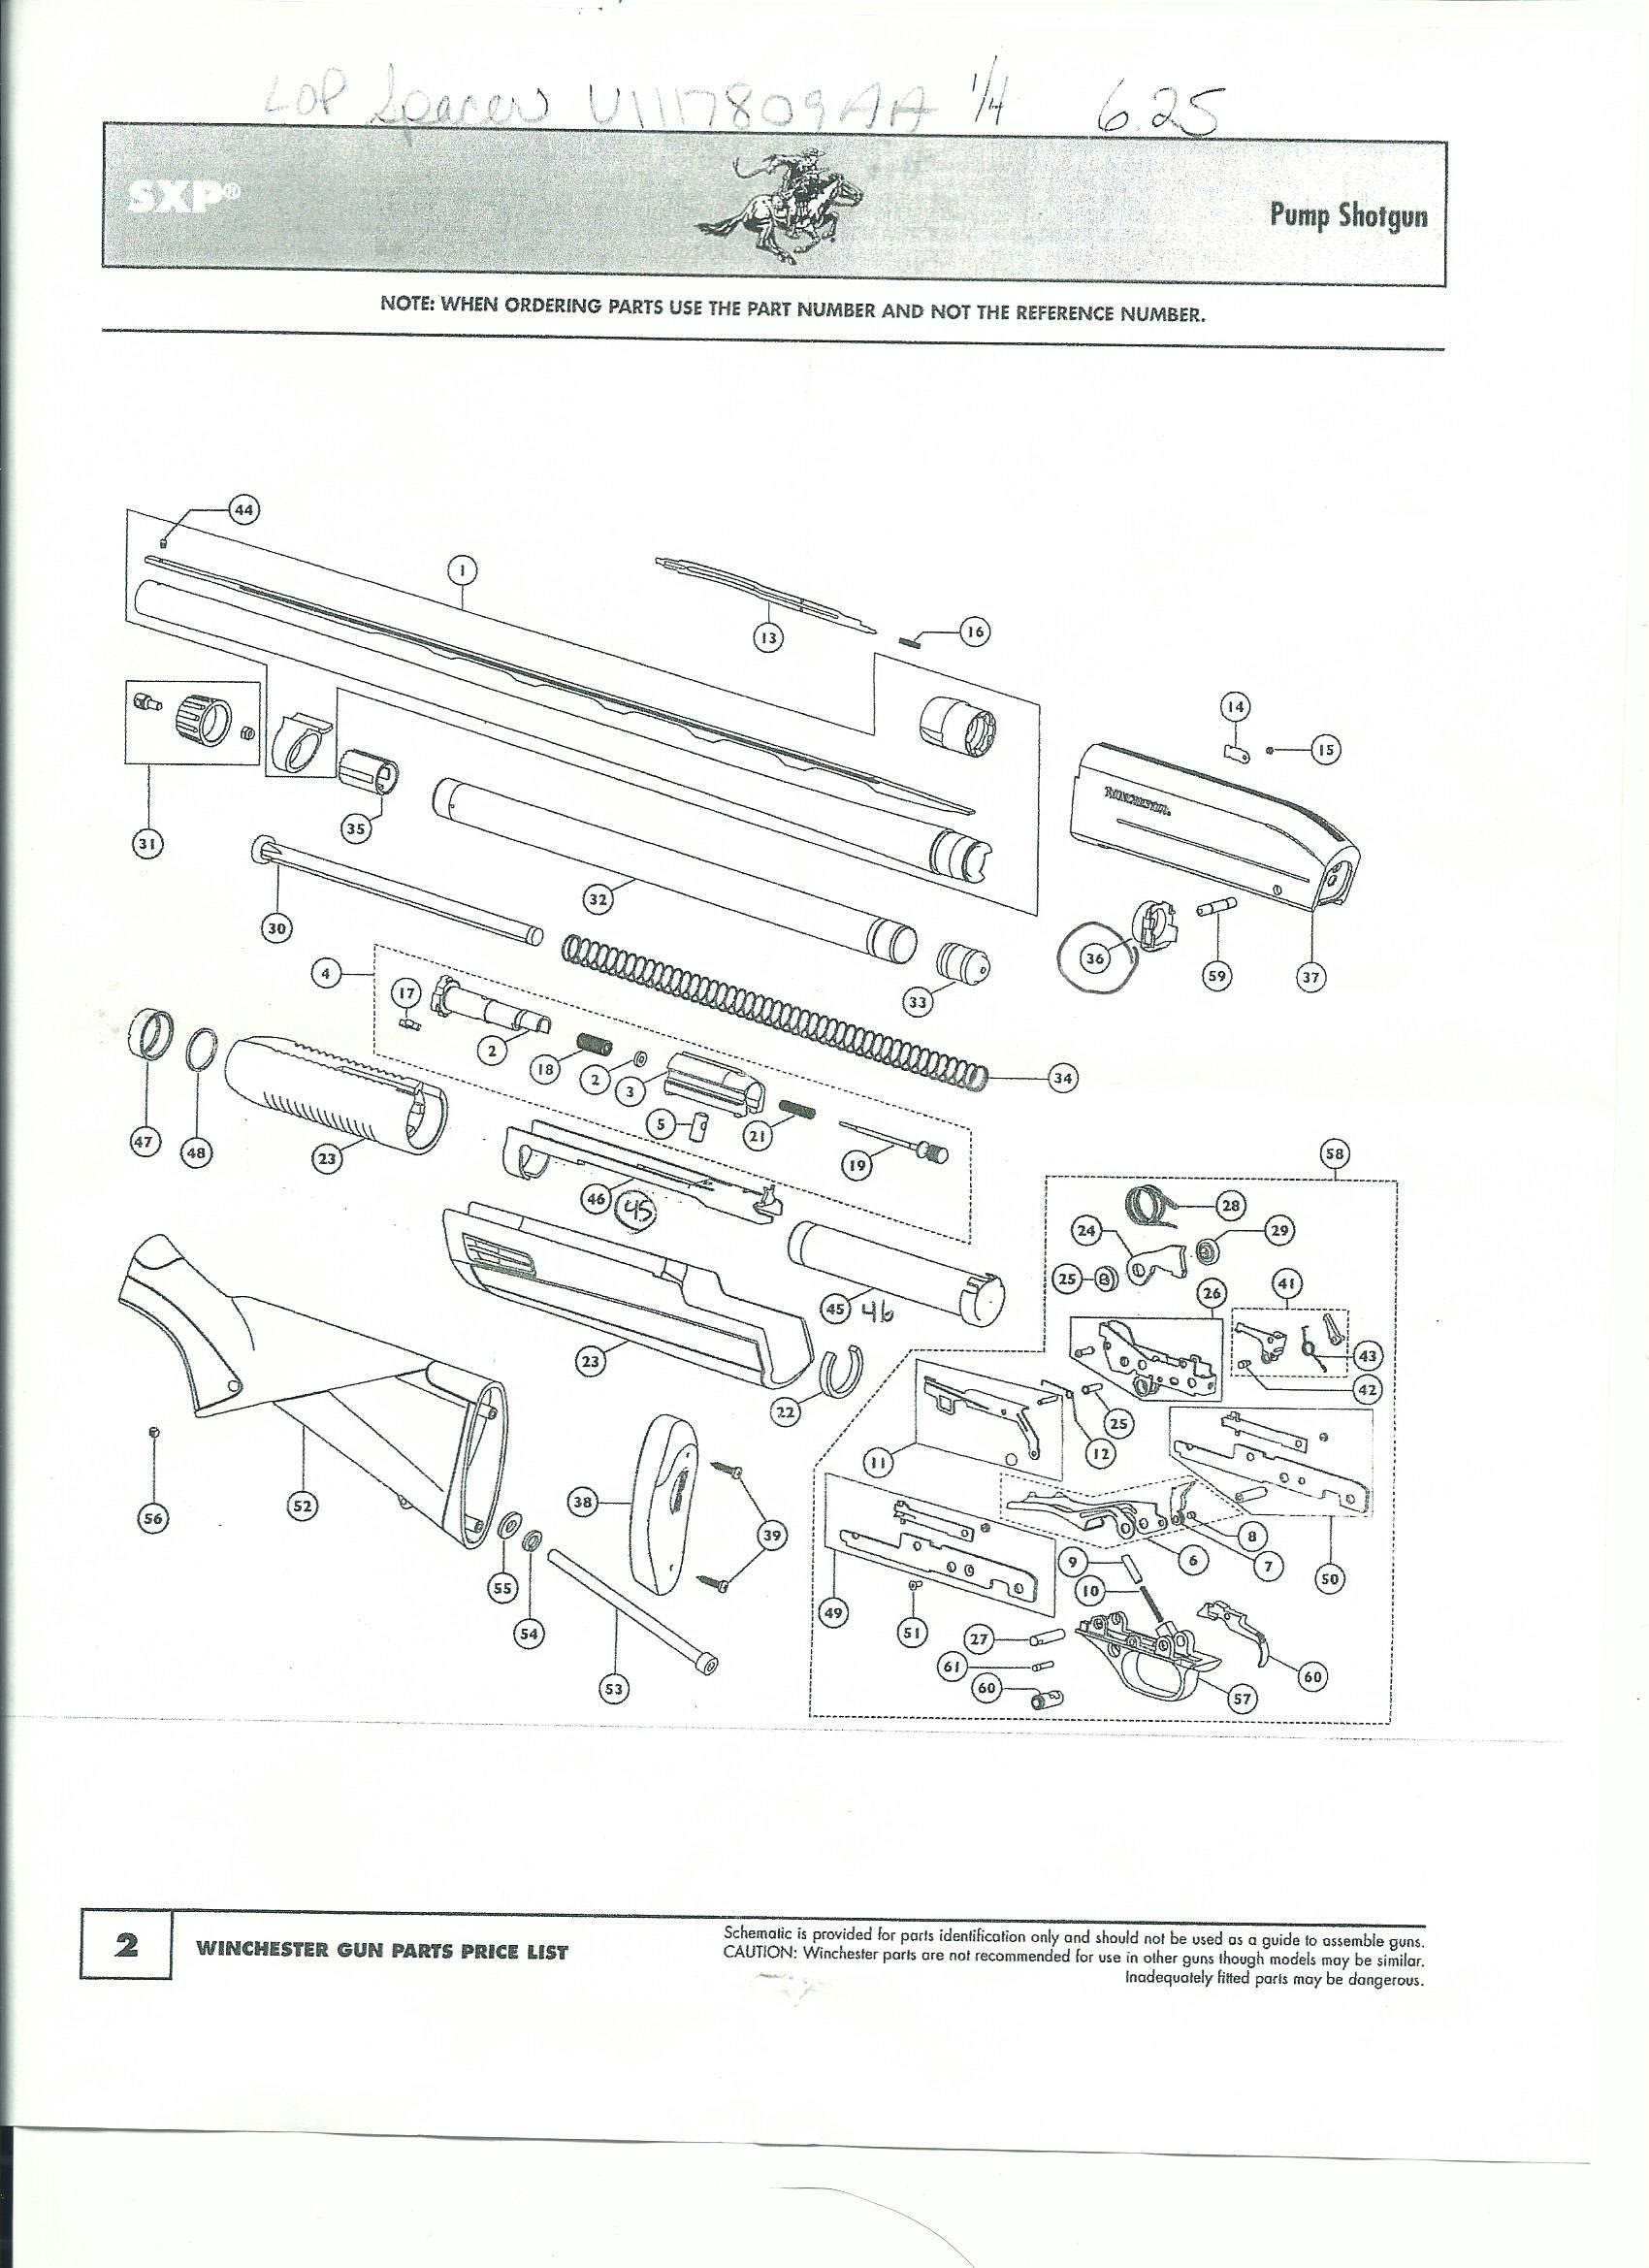 Winchester pump shotgun SXP parts diagram - My Work In Photographs